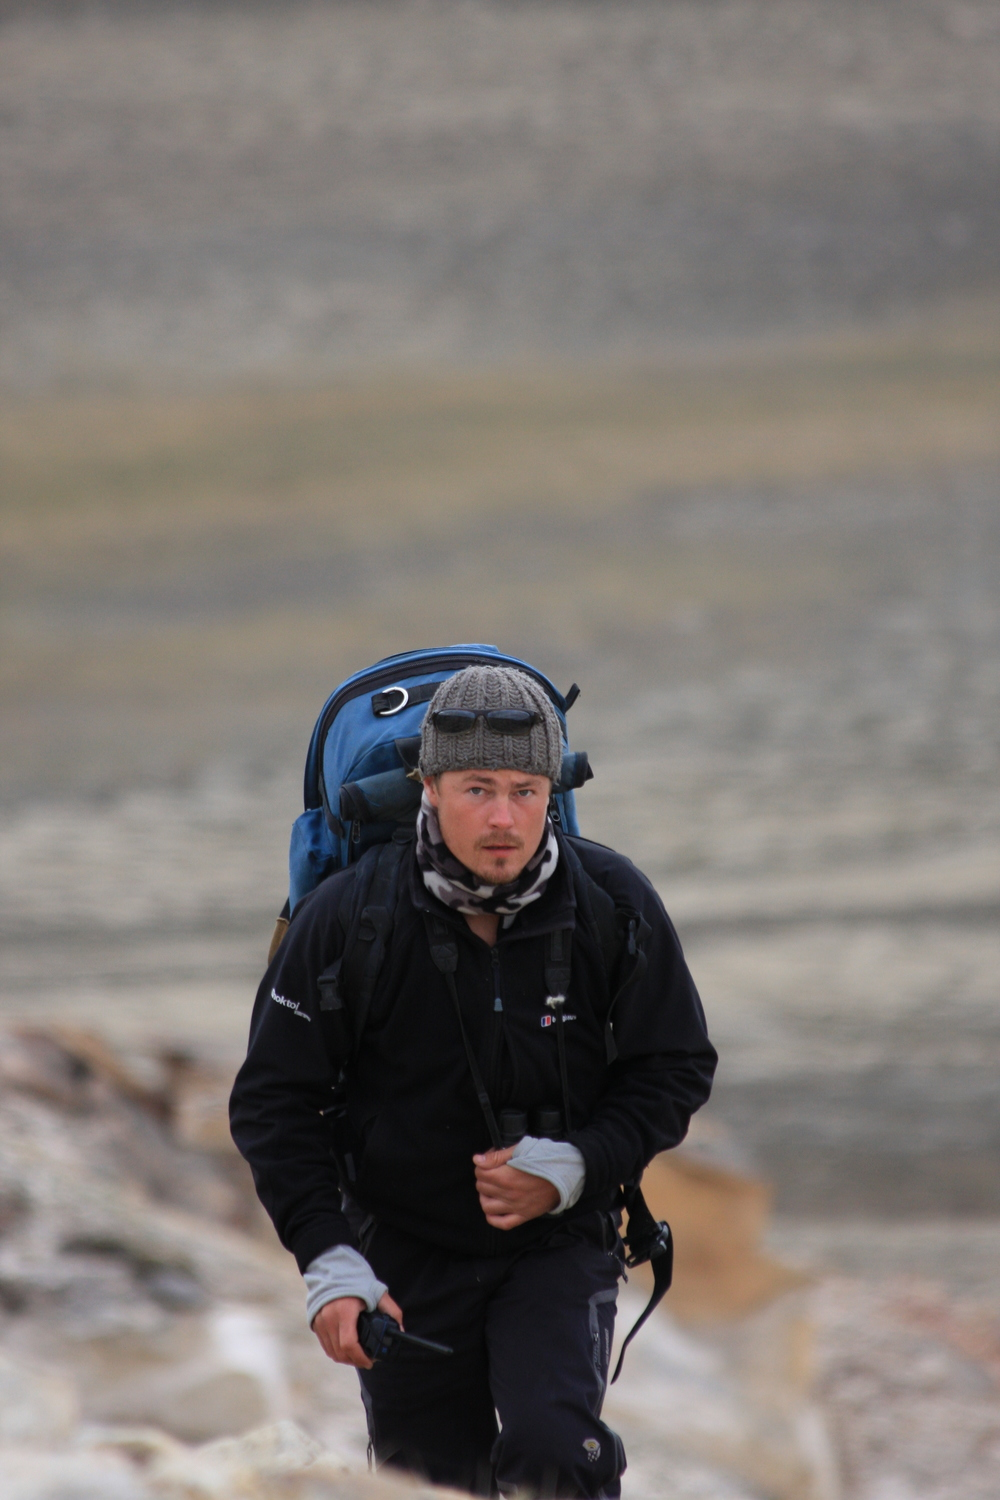 Tracking Arctic Wolves on the northern tip of Ellesmere Island in the Canadian high arctic for the BBC series Frozen Planet